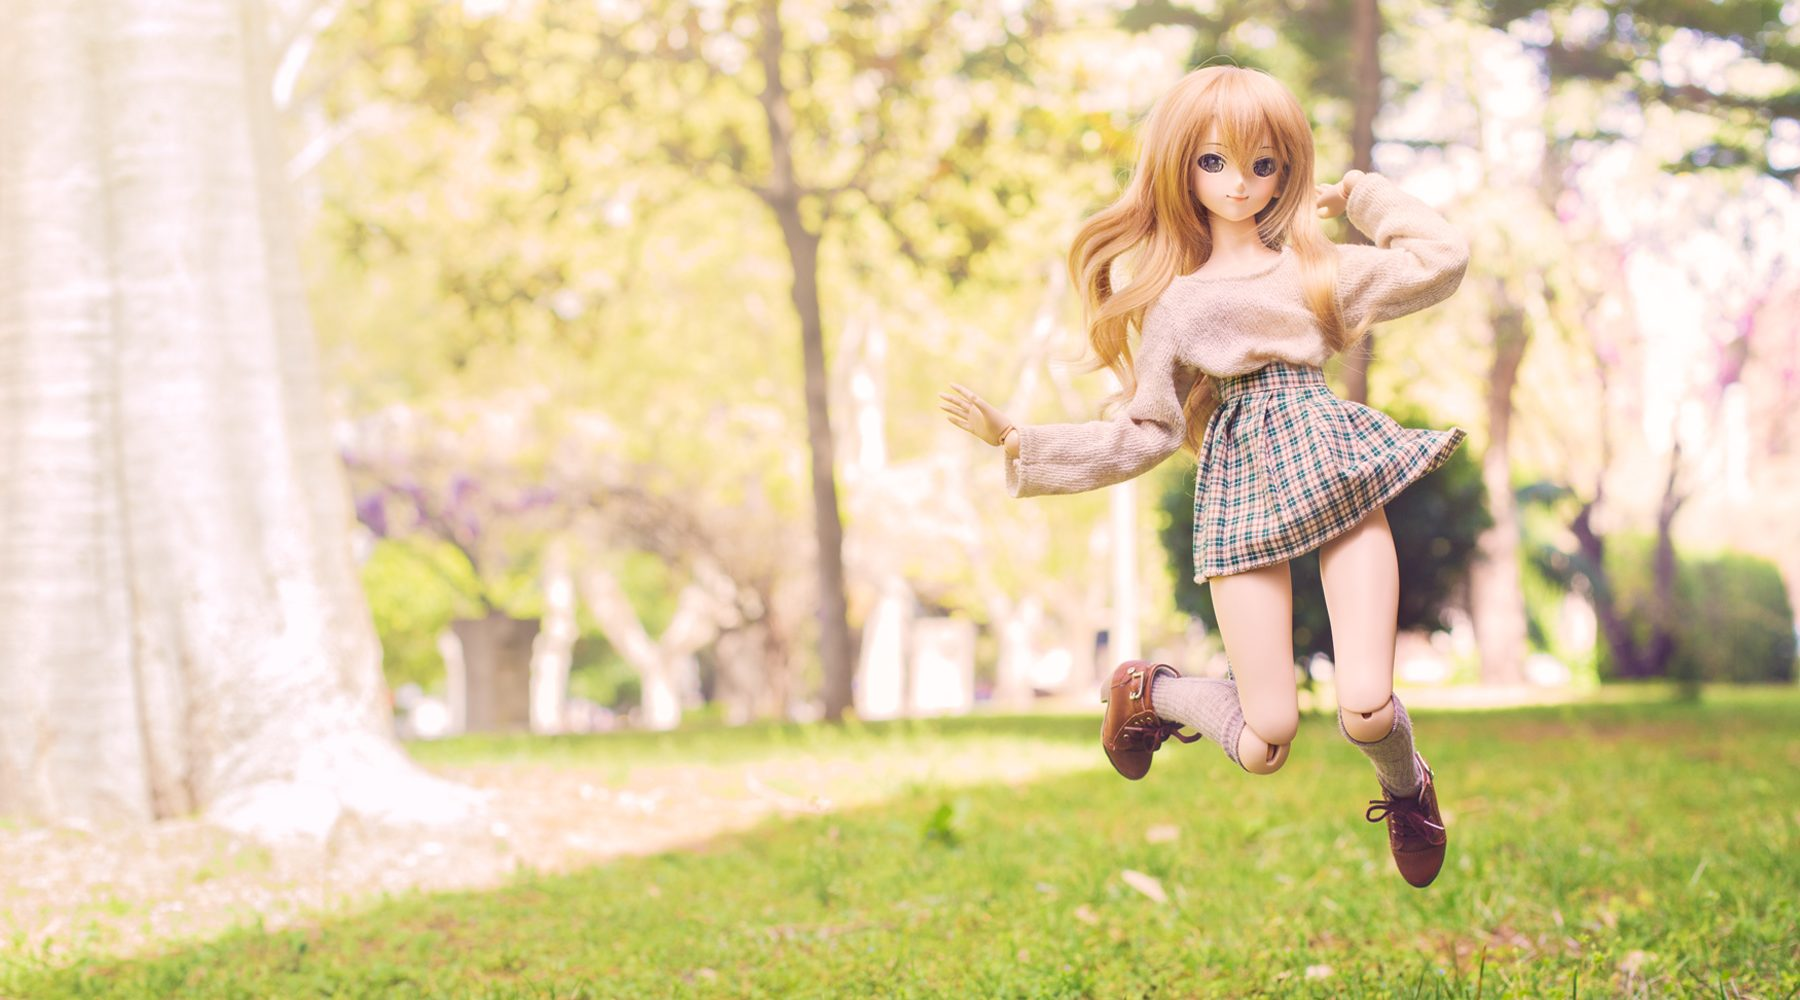 dollfie dream photography